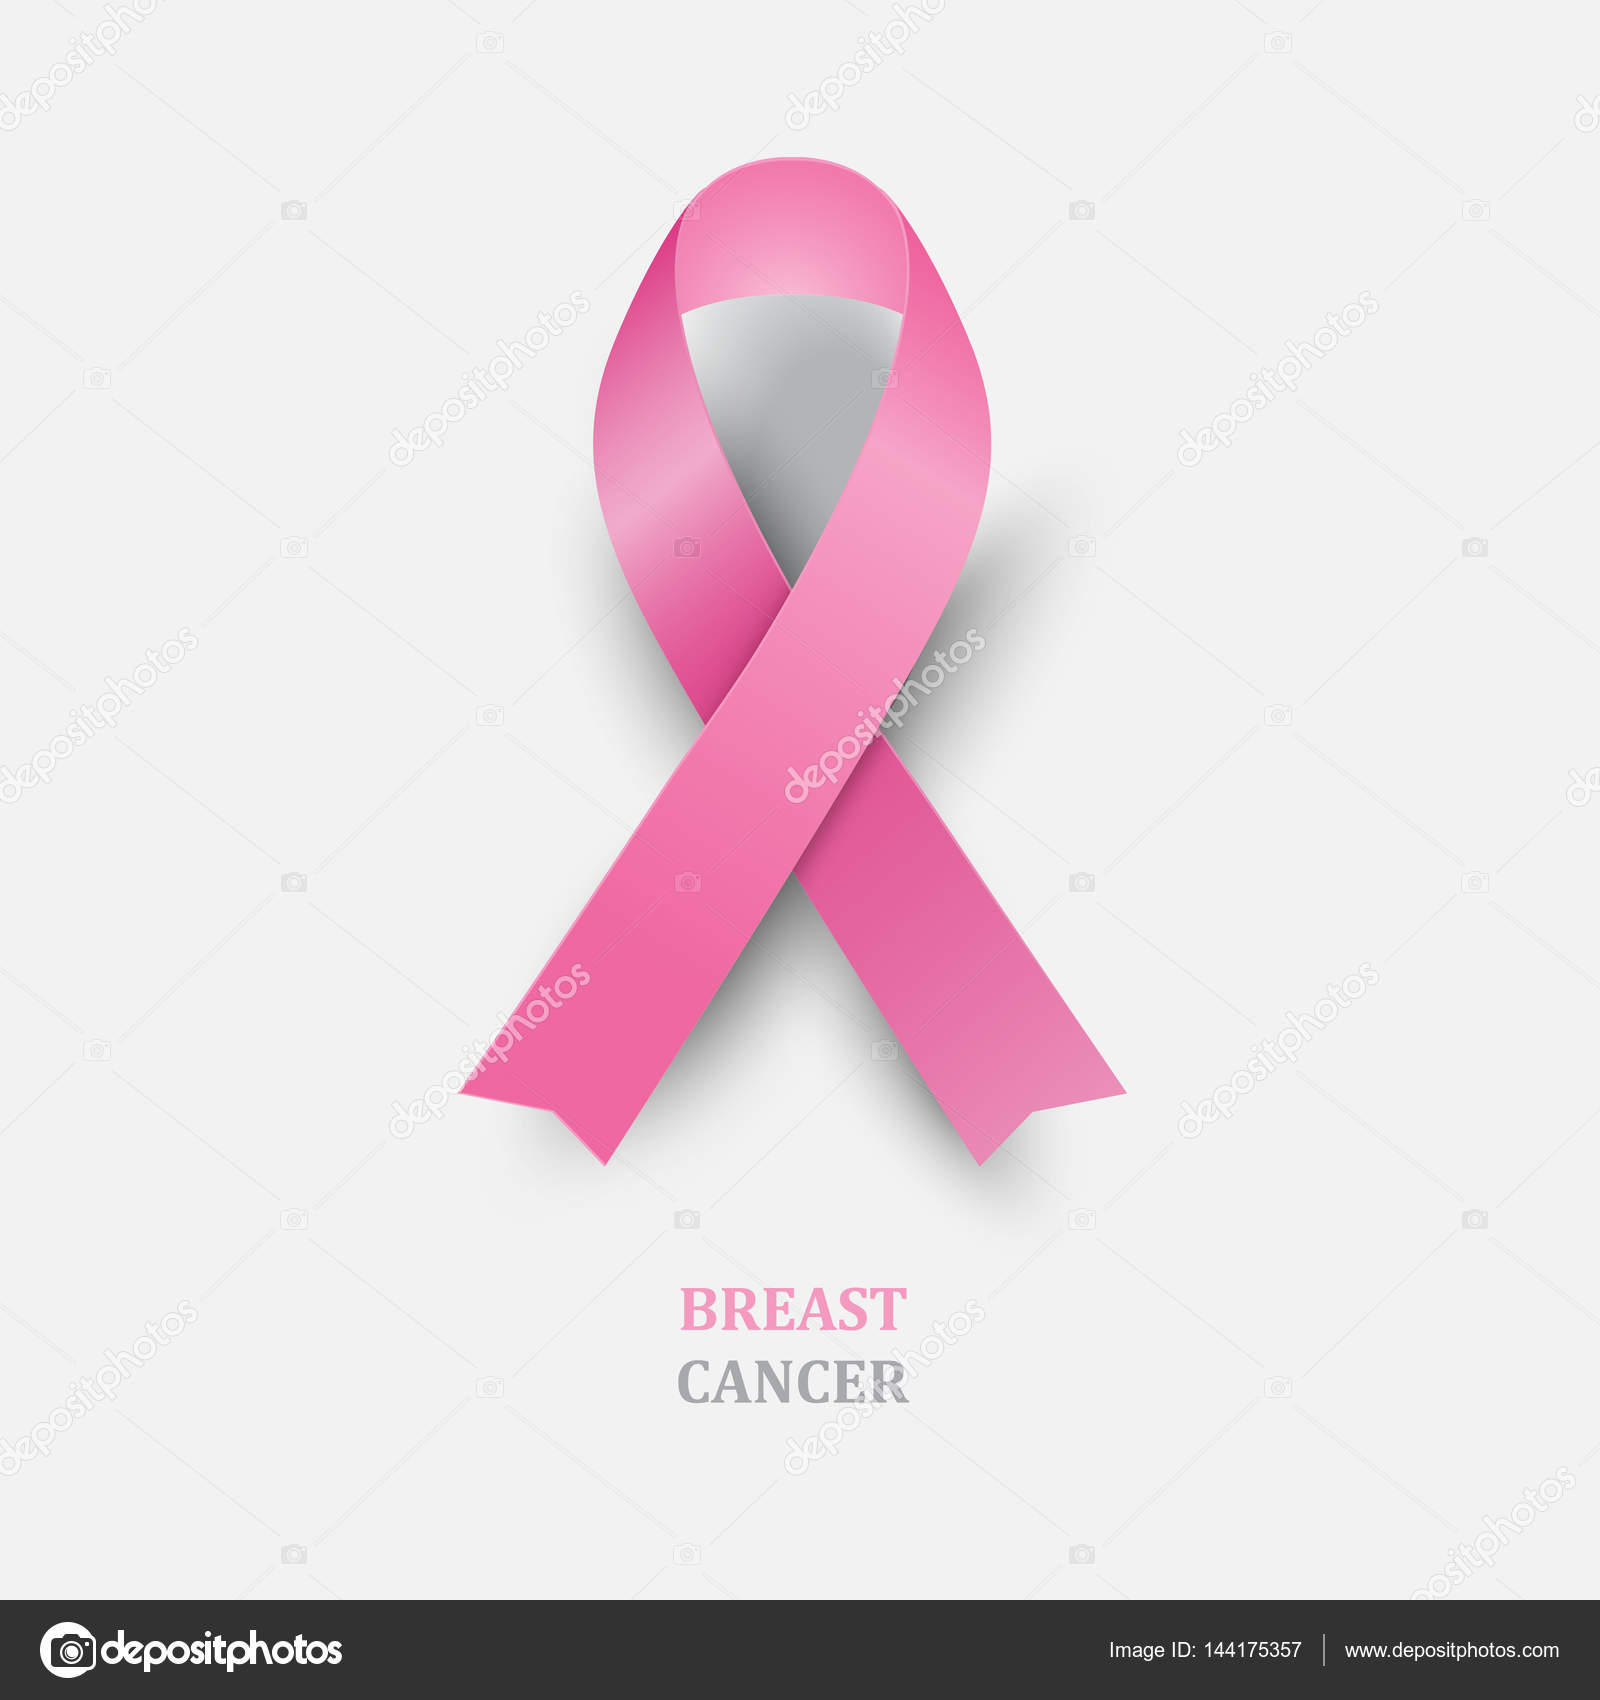 Pink ribbon breast cancer awareness stock vector a r t u r pink ribbon breast cancer awareness concept symbol breast cancer awareness month vector illustration vector by a r t u r biocorpaavc Choice Image